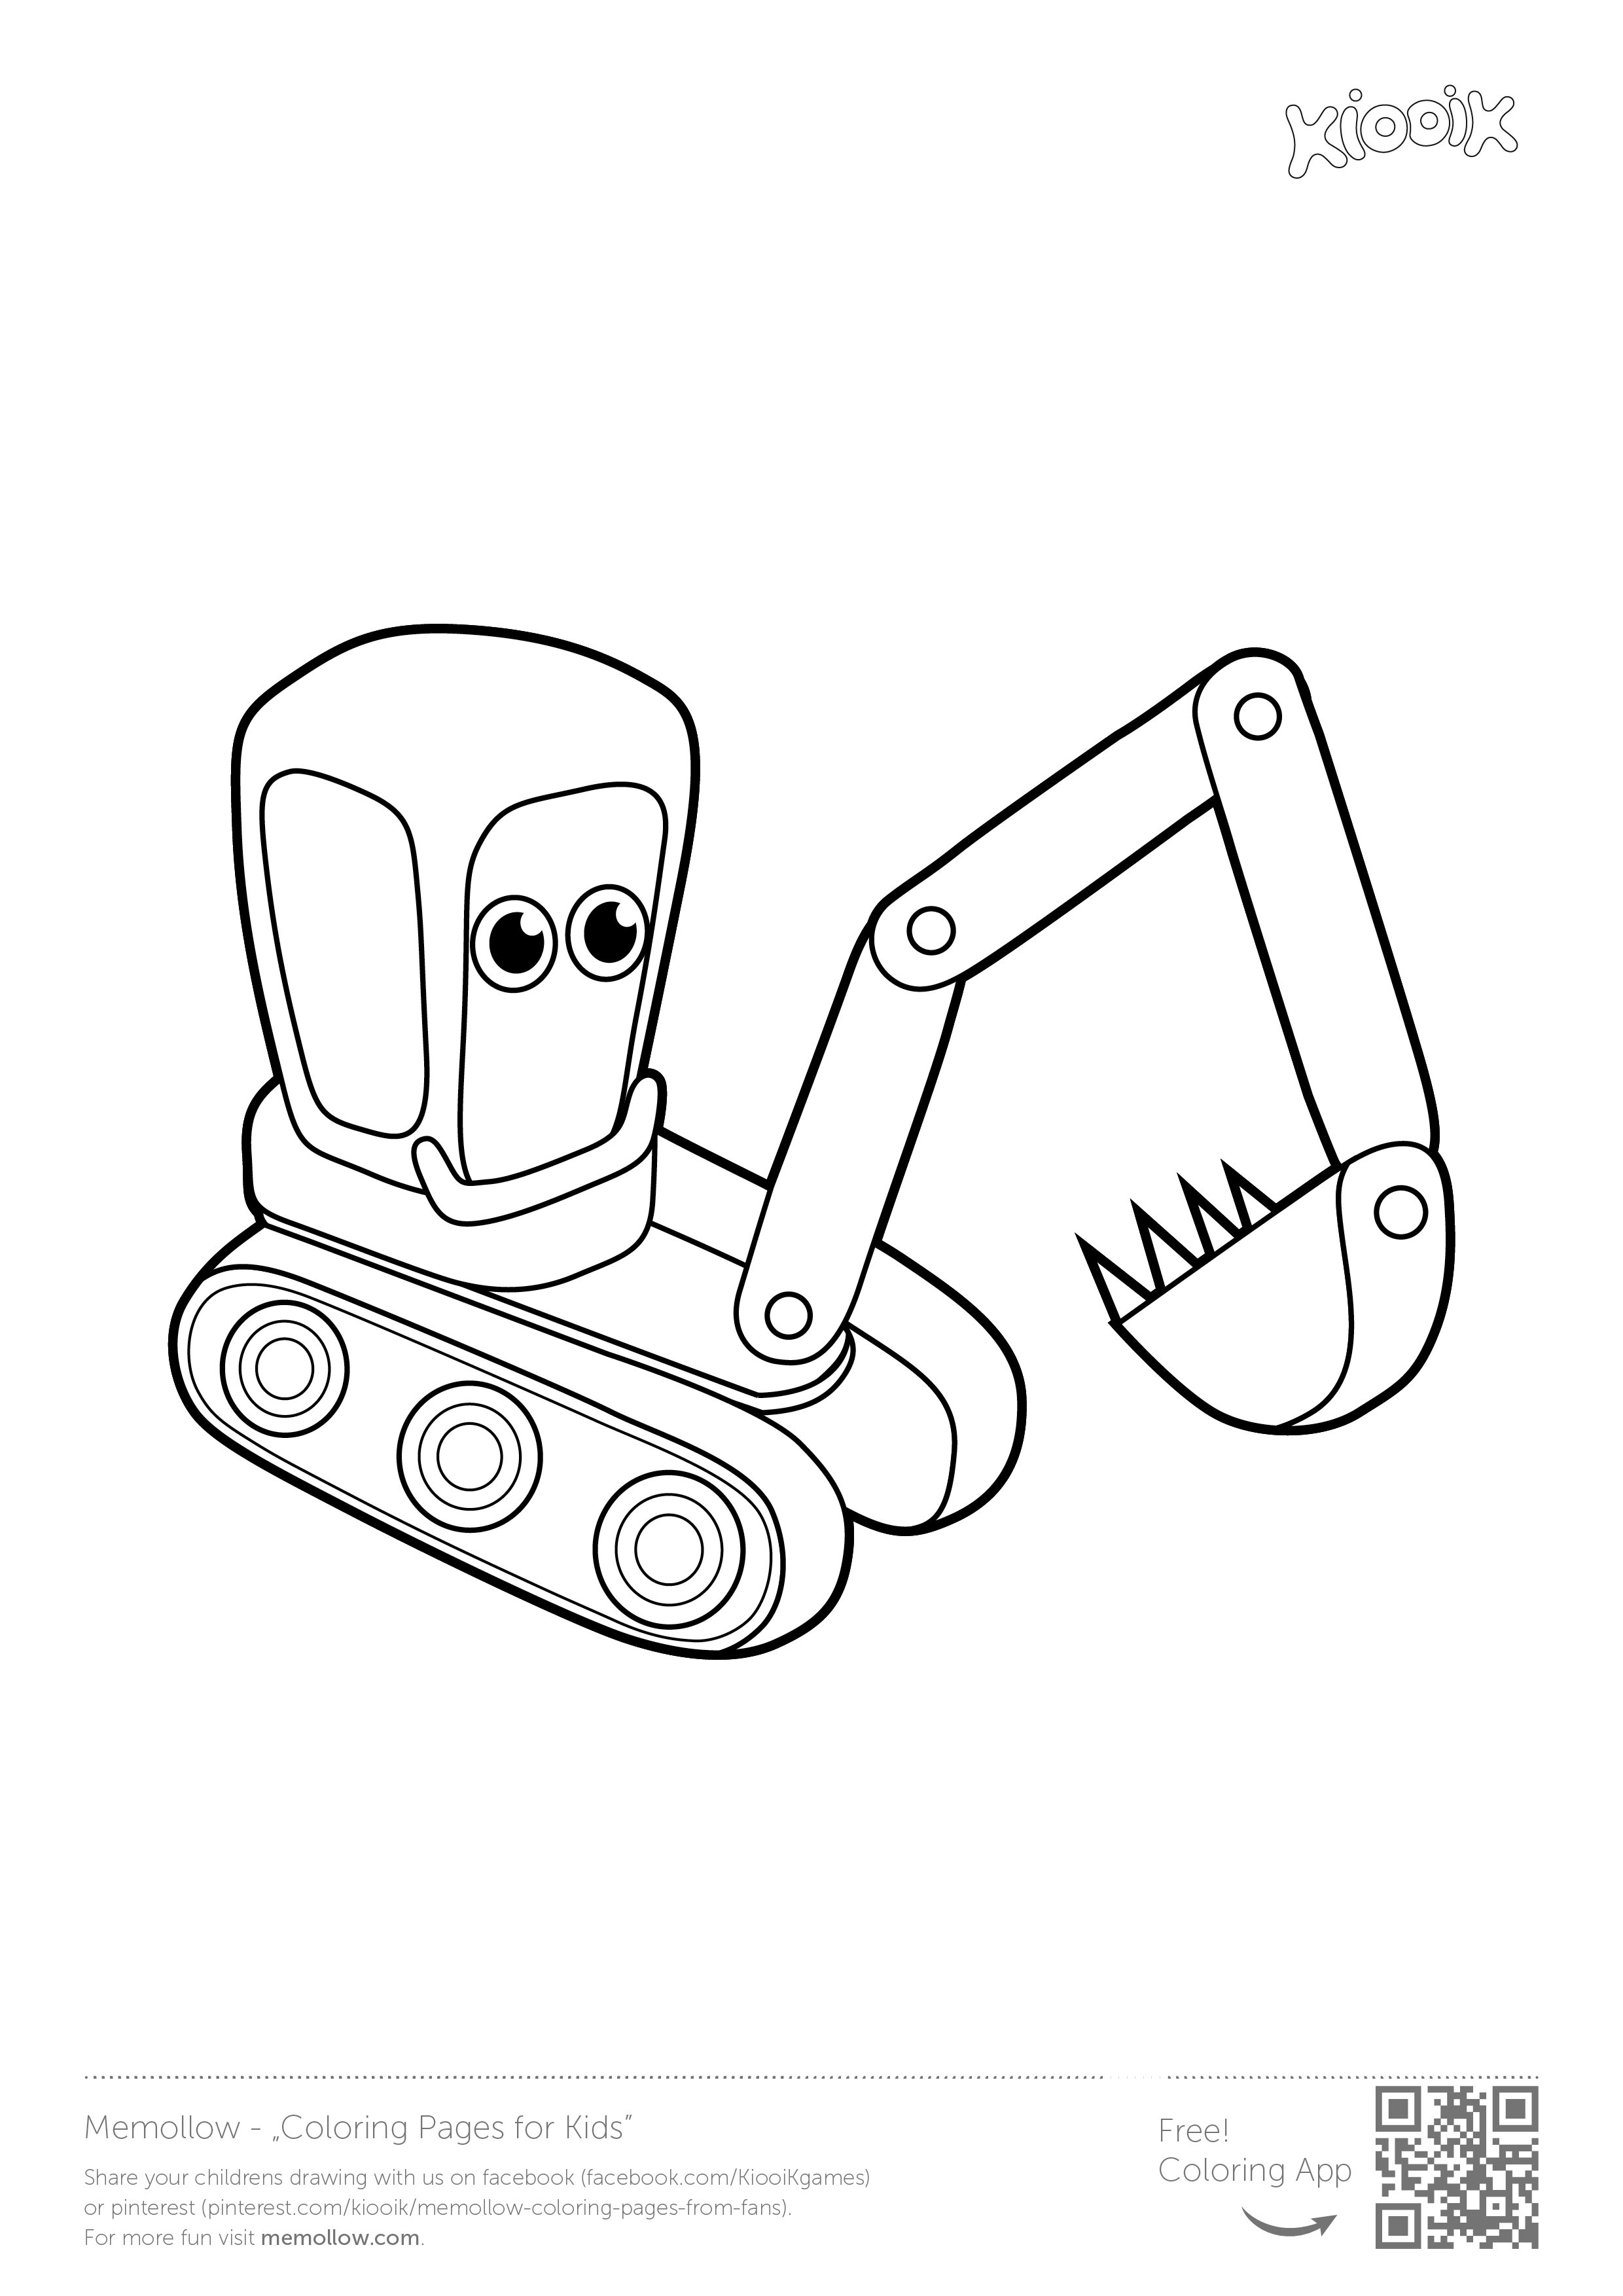 Excavator Memollow To Print Coloring Pages For Kids